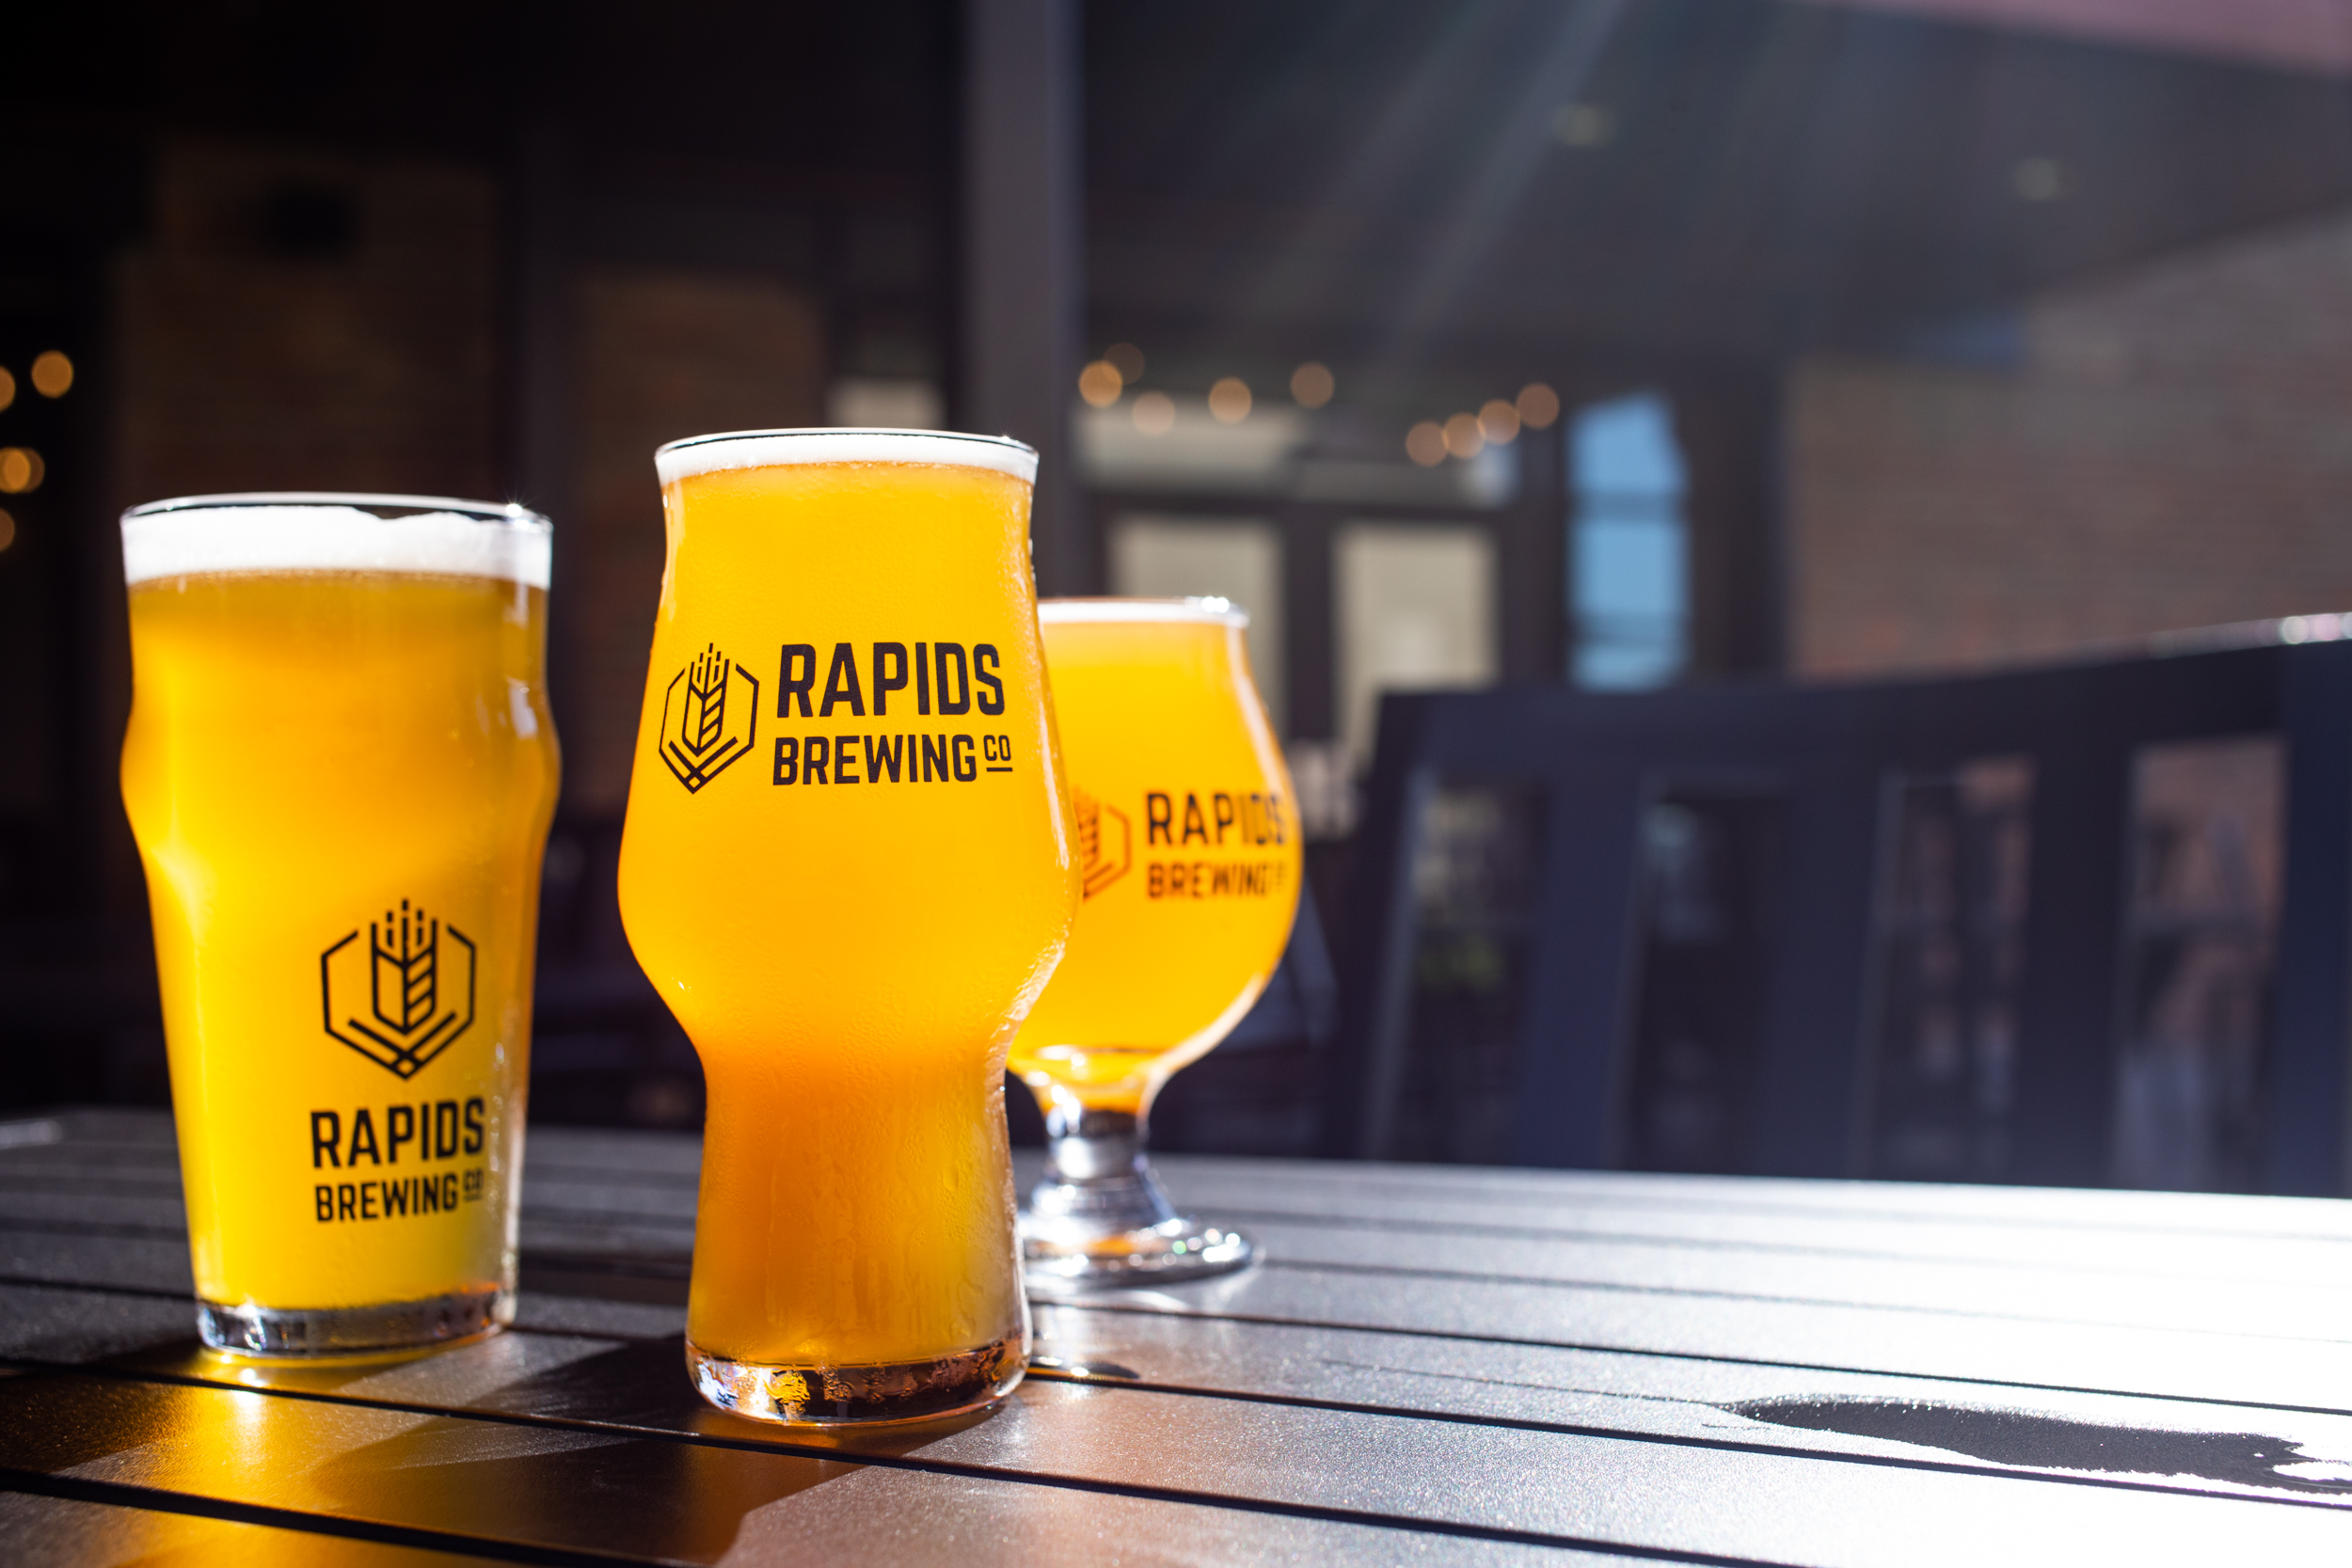 Beer at Rapids Brewing Co. in Grand Rapids, Minnesota // Photo by Tj Turner